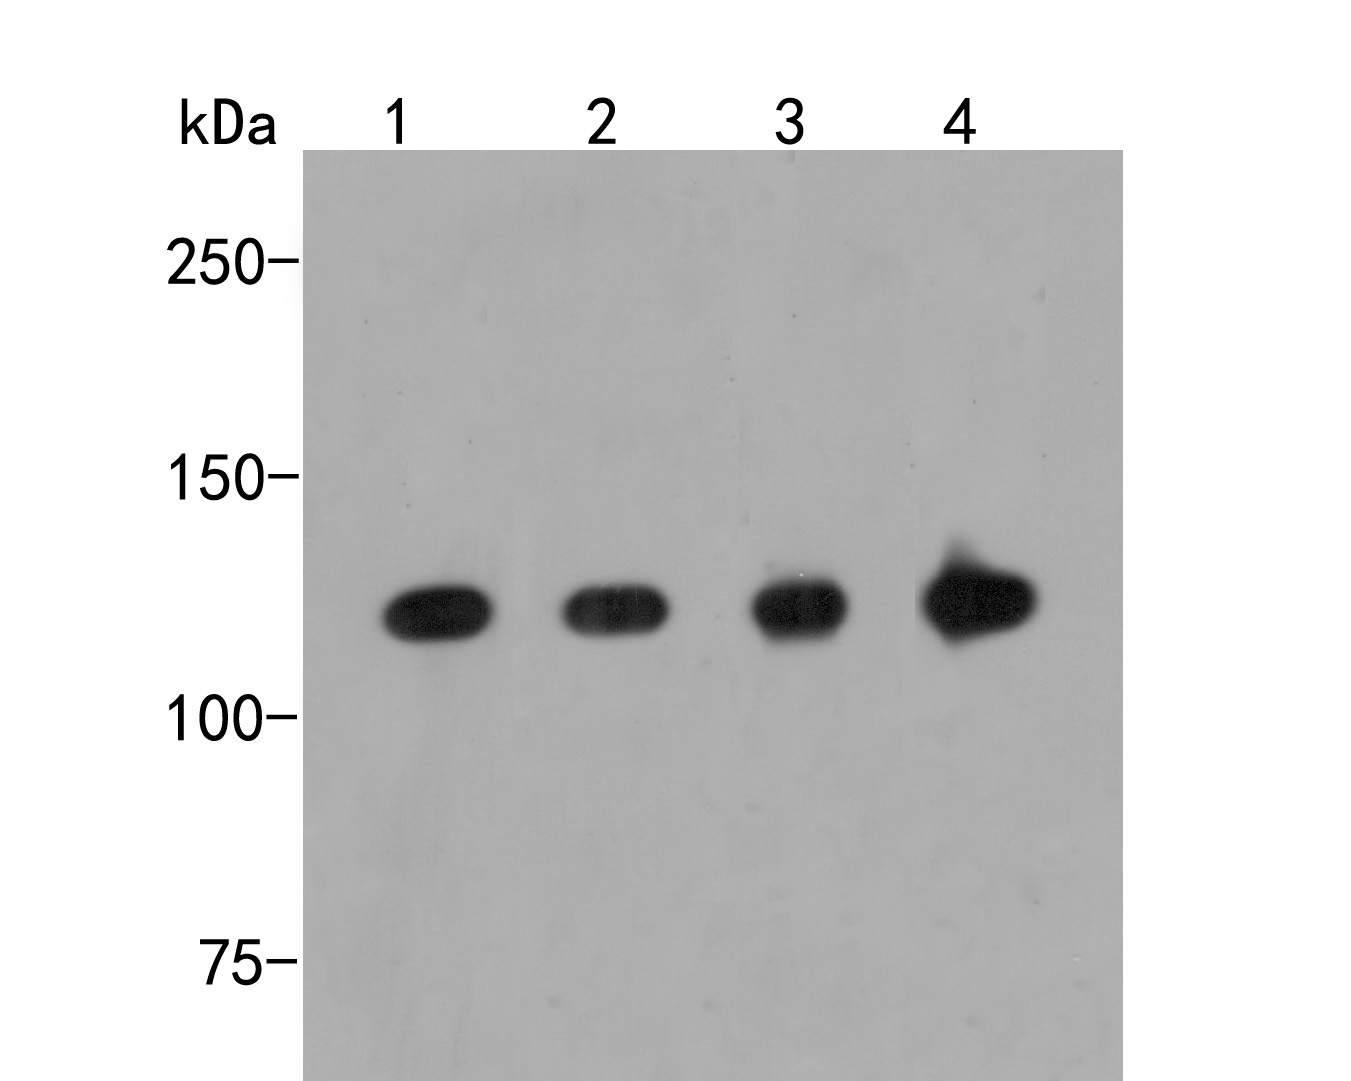 Western blot analysis of RanBP9 on different lysates. Proteins were transferred to a PVDF membrane and blocked with 5% BSA in PBS for 1 hour at room temperature. The primary antibody (ER2001-63, 1/500) was used in 5% BSA at room temperature for 2 hours. Goat Anti-Rabbit IgG - HRP Secondary Antibody (HA1001) at 1:5,000 dilution was used for 1 hour at room temperature.<br />  Positive control: <br />  Lane 1: SKBR-3 cell lysate<br />  Lane 2: 293 cell lysate<br />  Lane 3: Mouse lung tissue lysate<br />  Lane 4: Rat brain tissue lysate